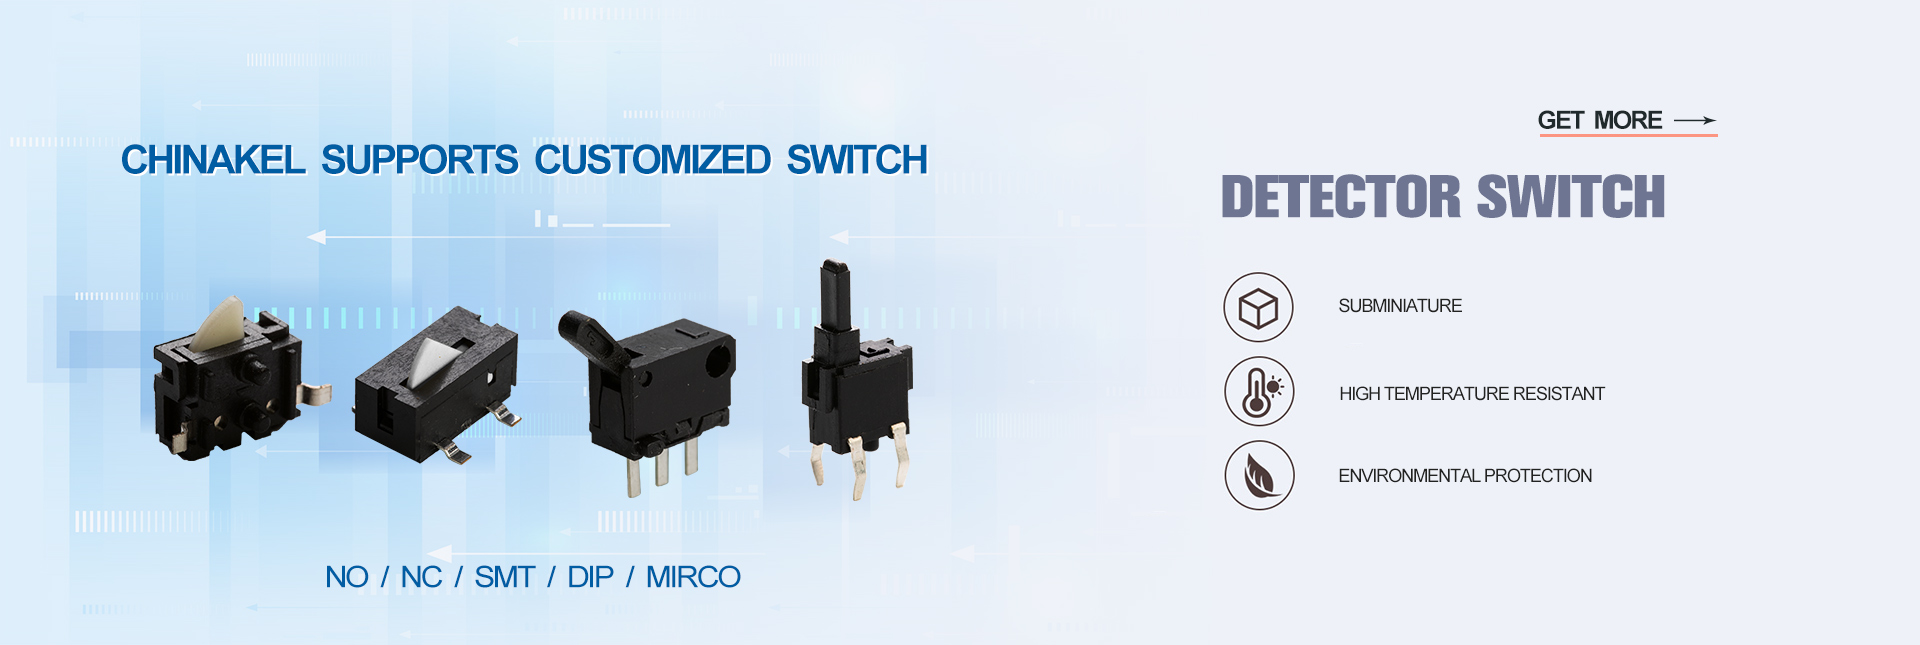 detector-switch